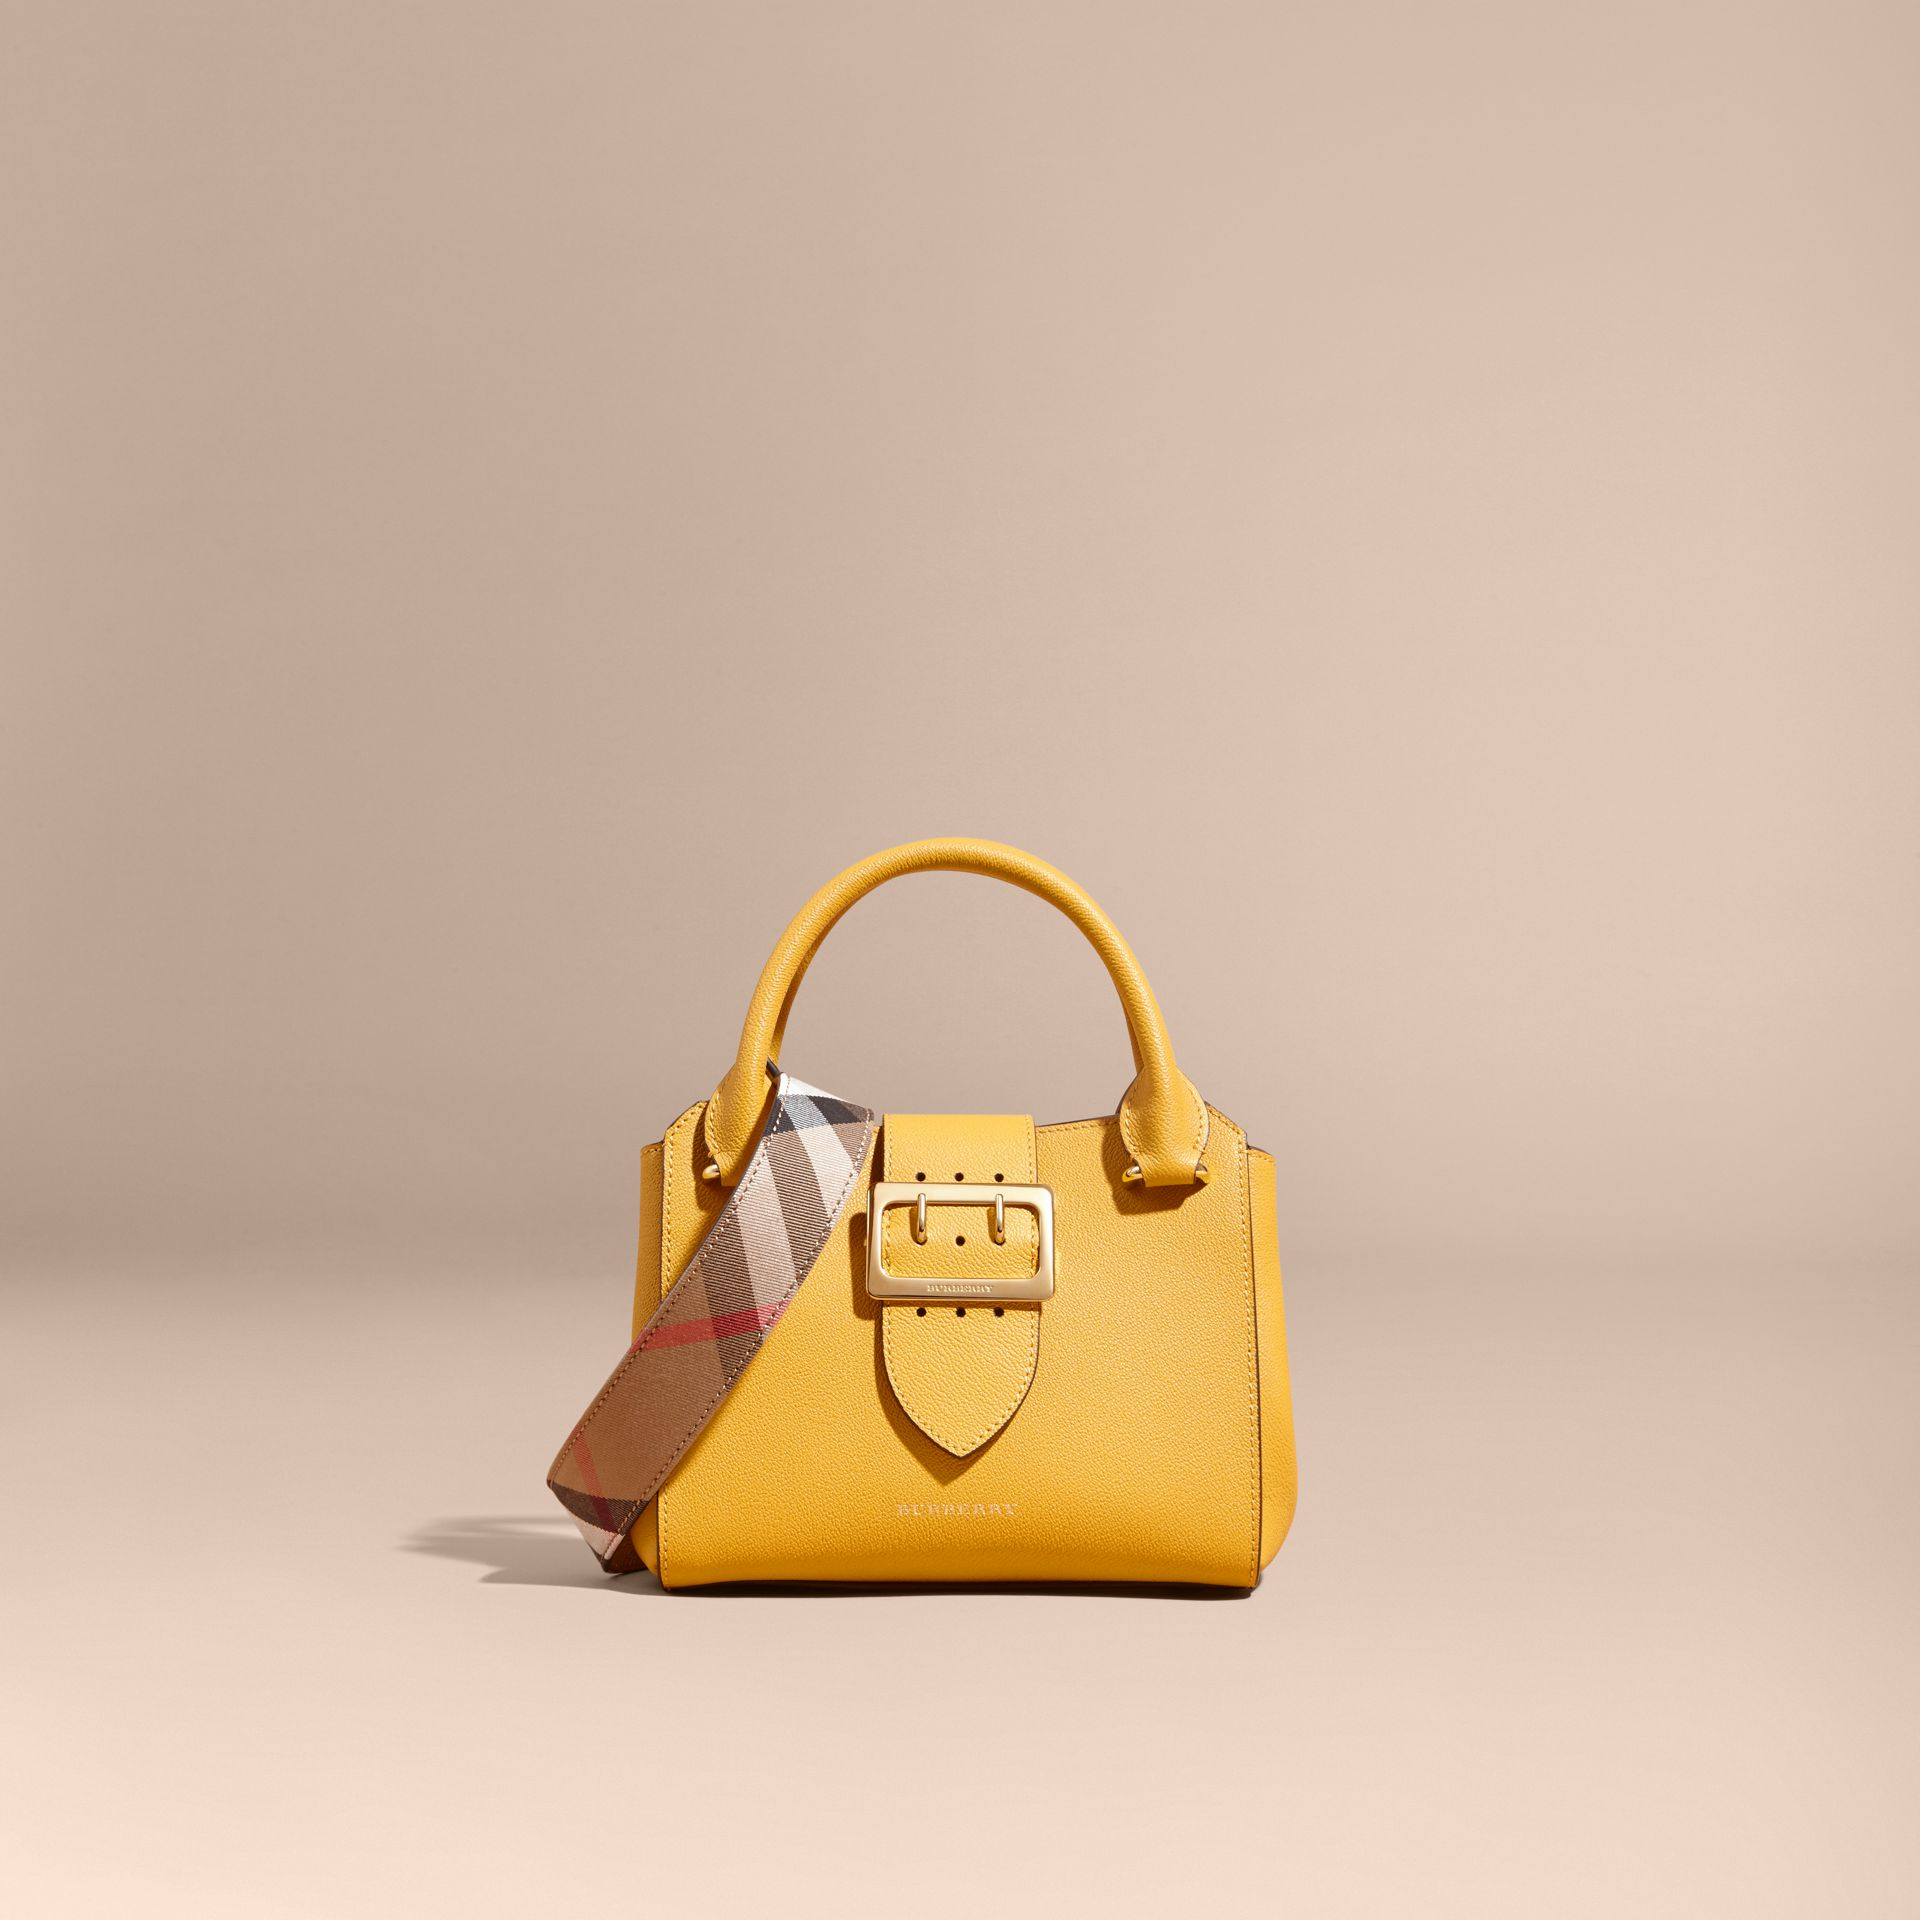 The Small Buckle Tote in Grainy Leather in Bright Straw - Women | Burberry Singapore - gallery image 8